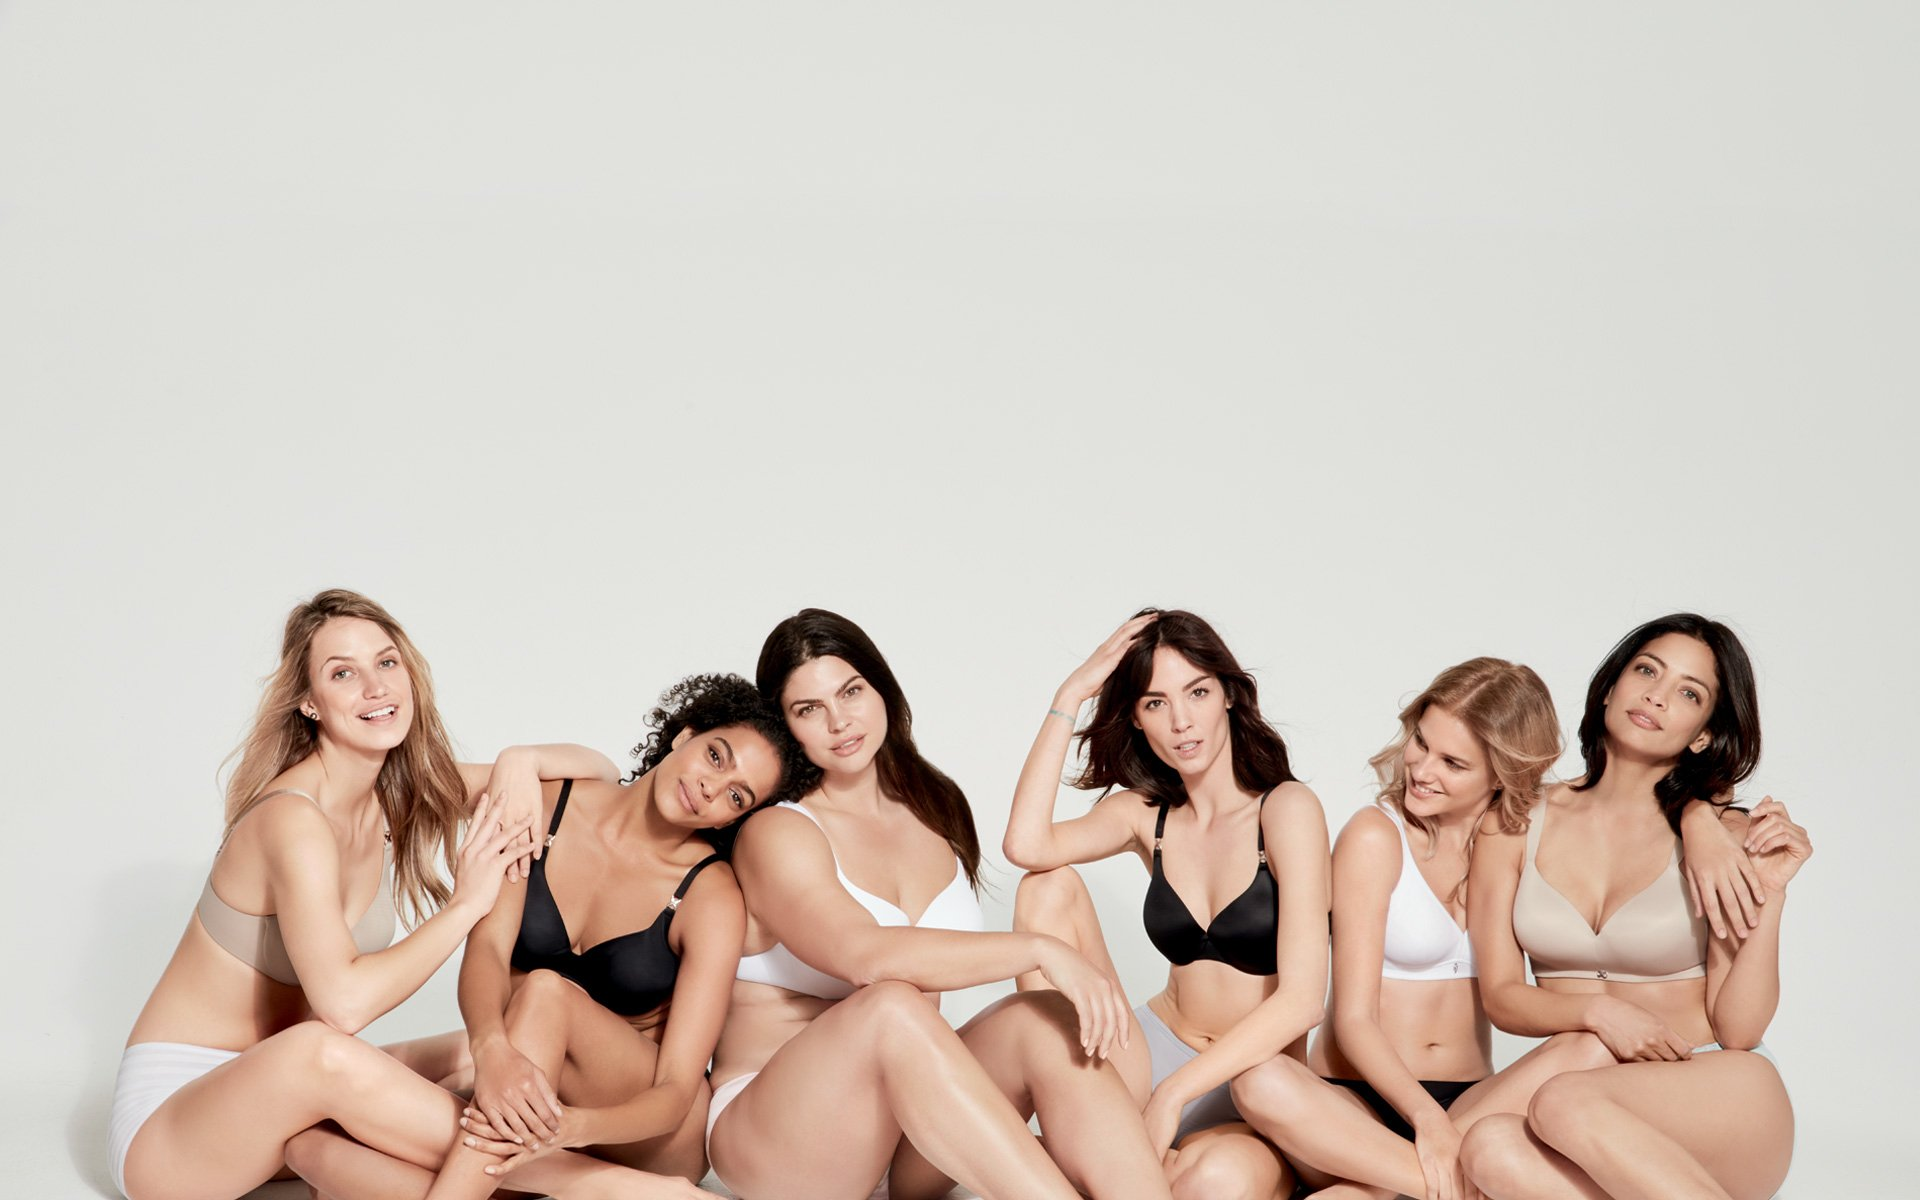 Women lined up lounging in different availible styles and colors of the RealFit Bra